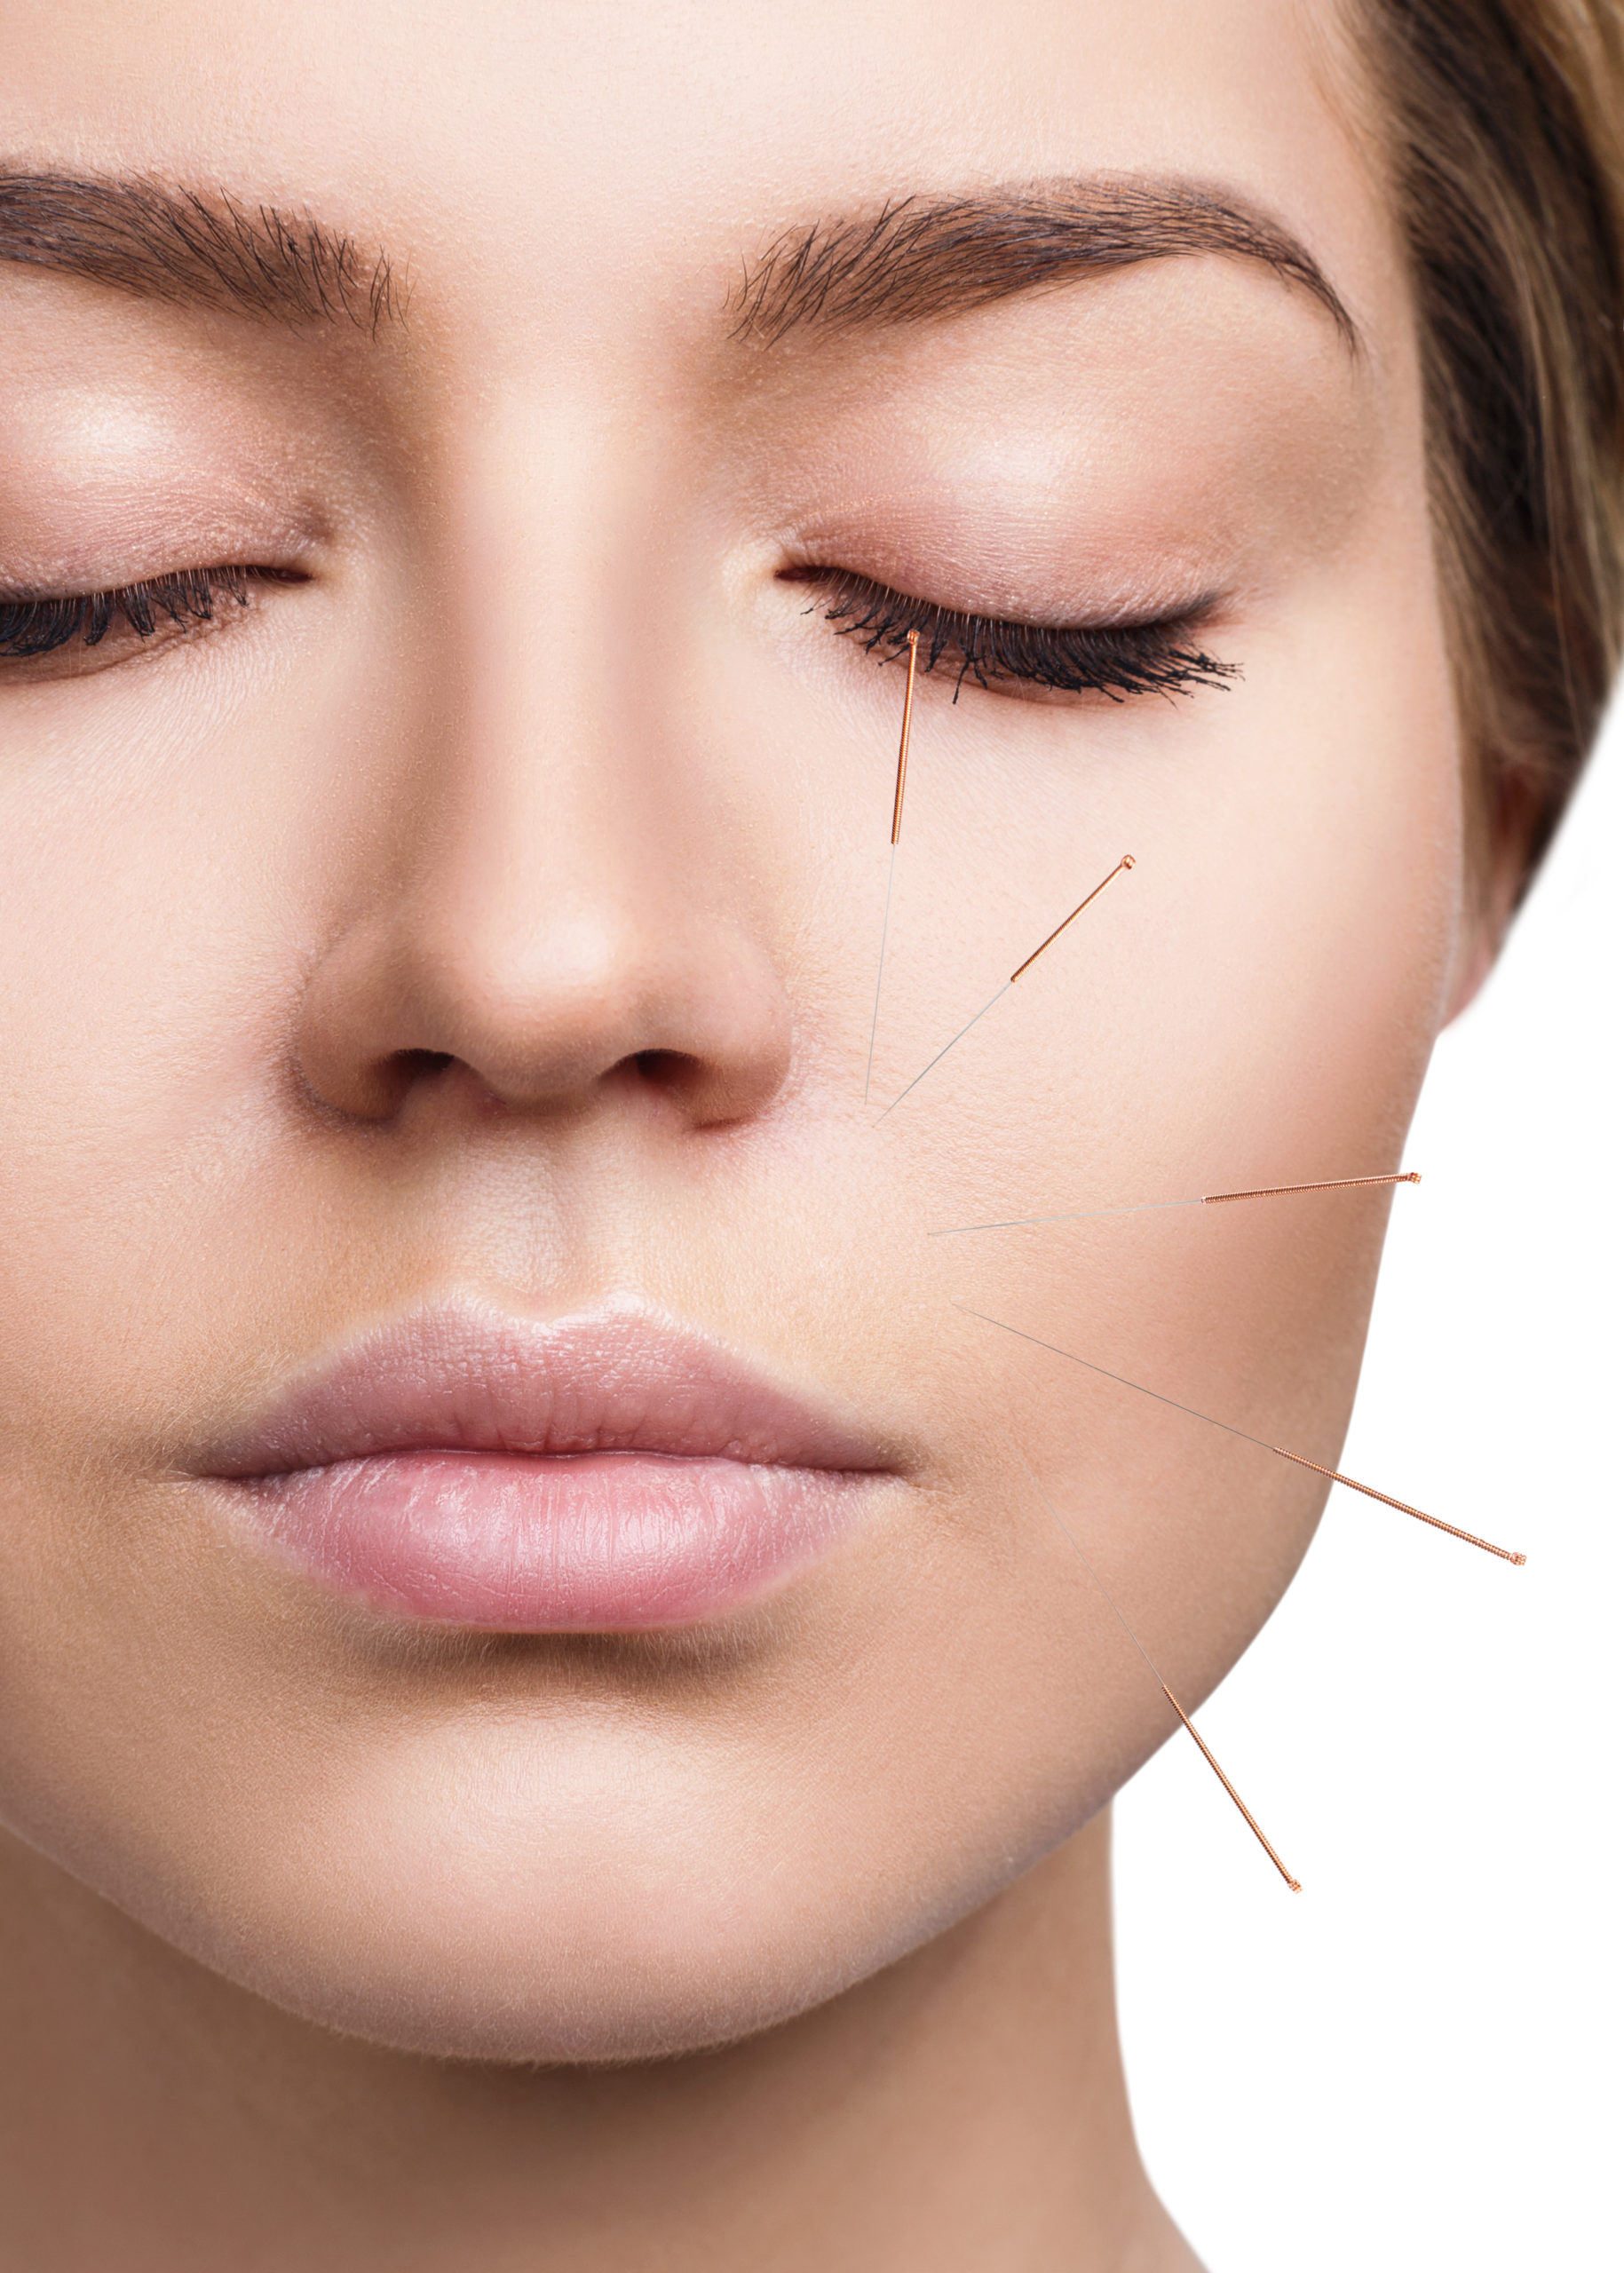 acupuncture lifting marseille